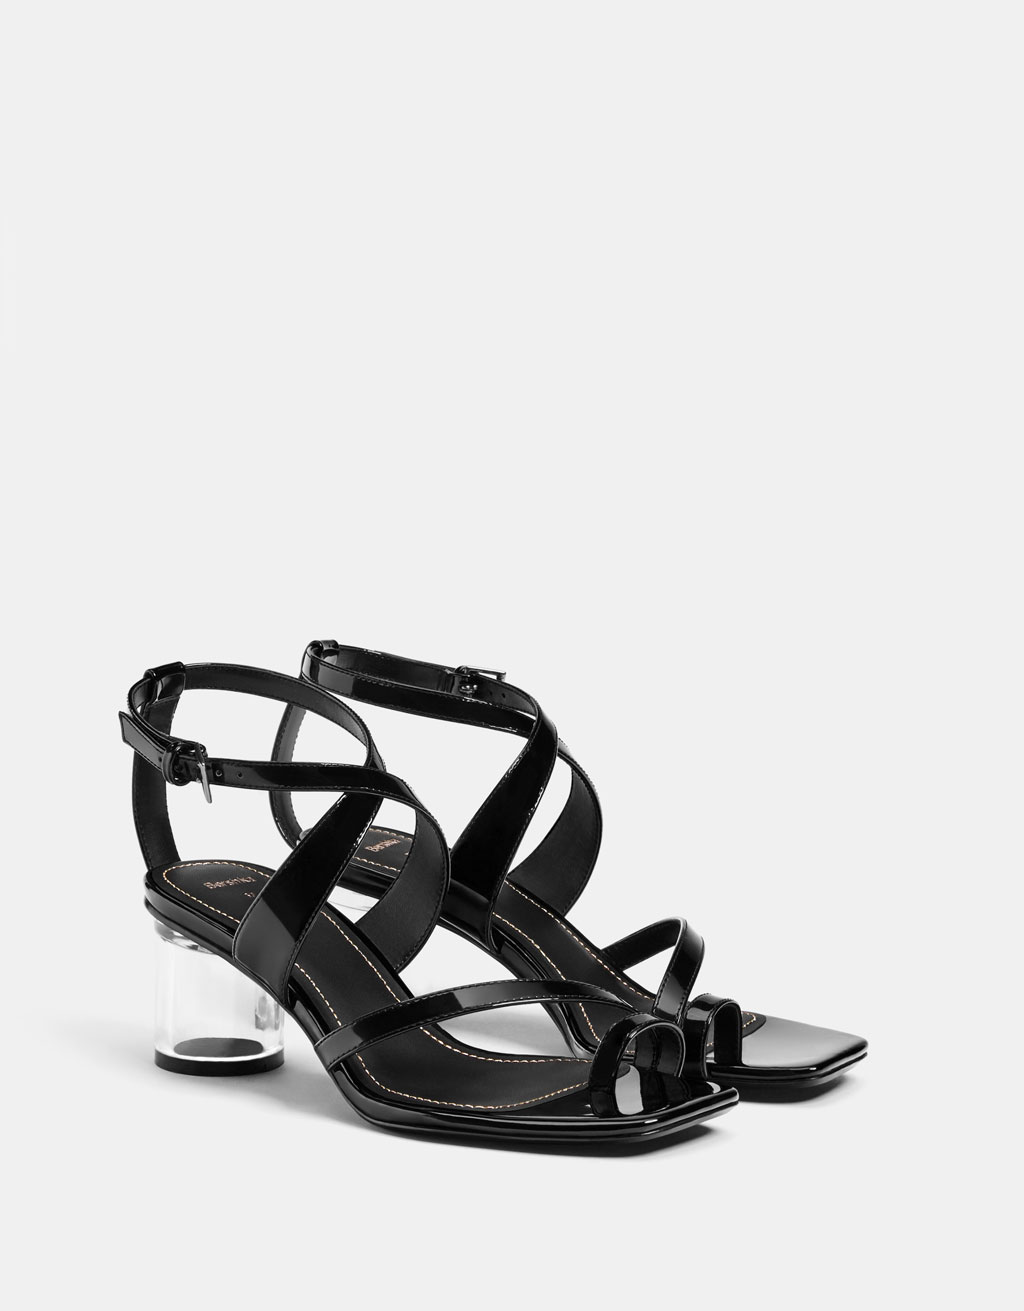 Methacrylate high heel sandals